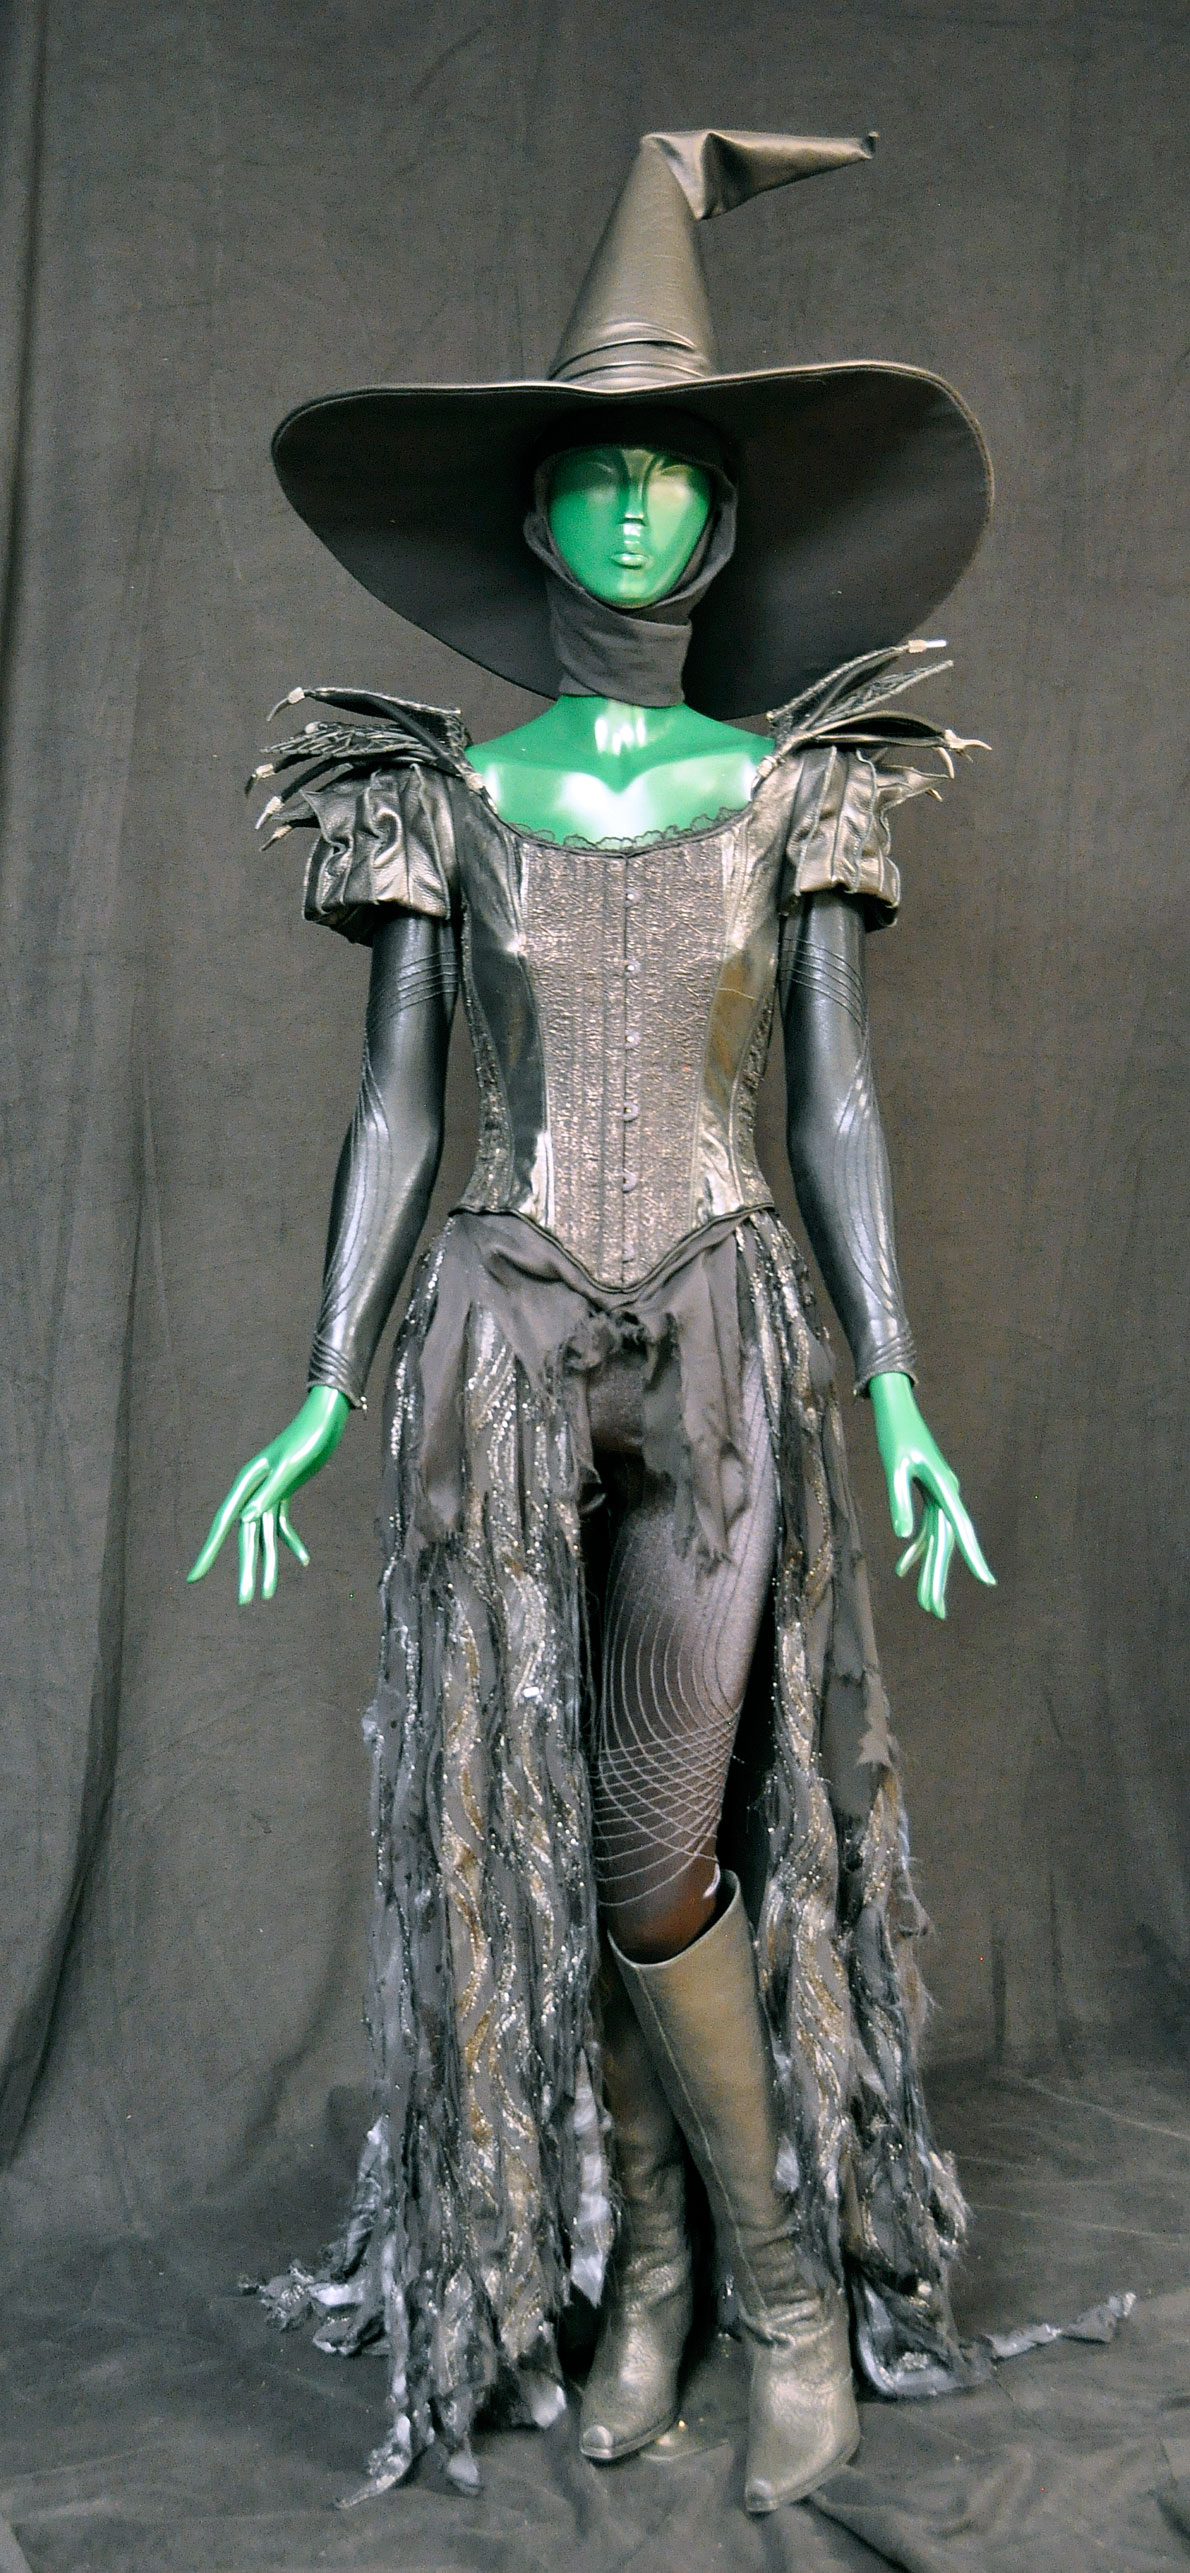 costume  makeup from disney's oz the great and powerful